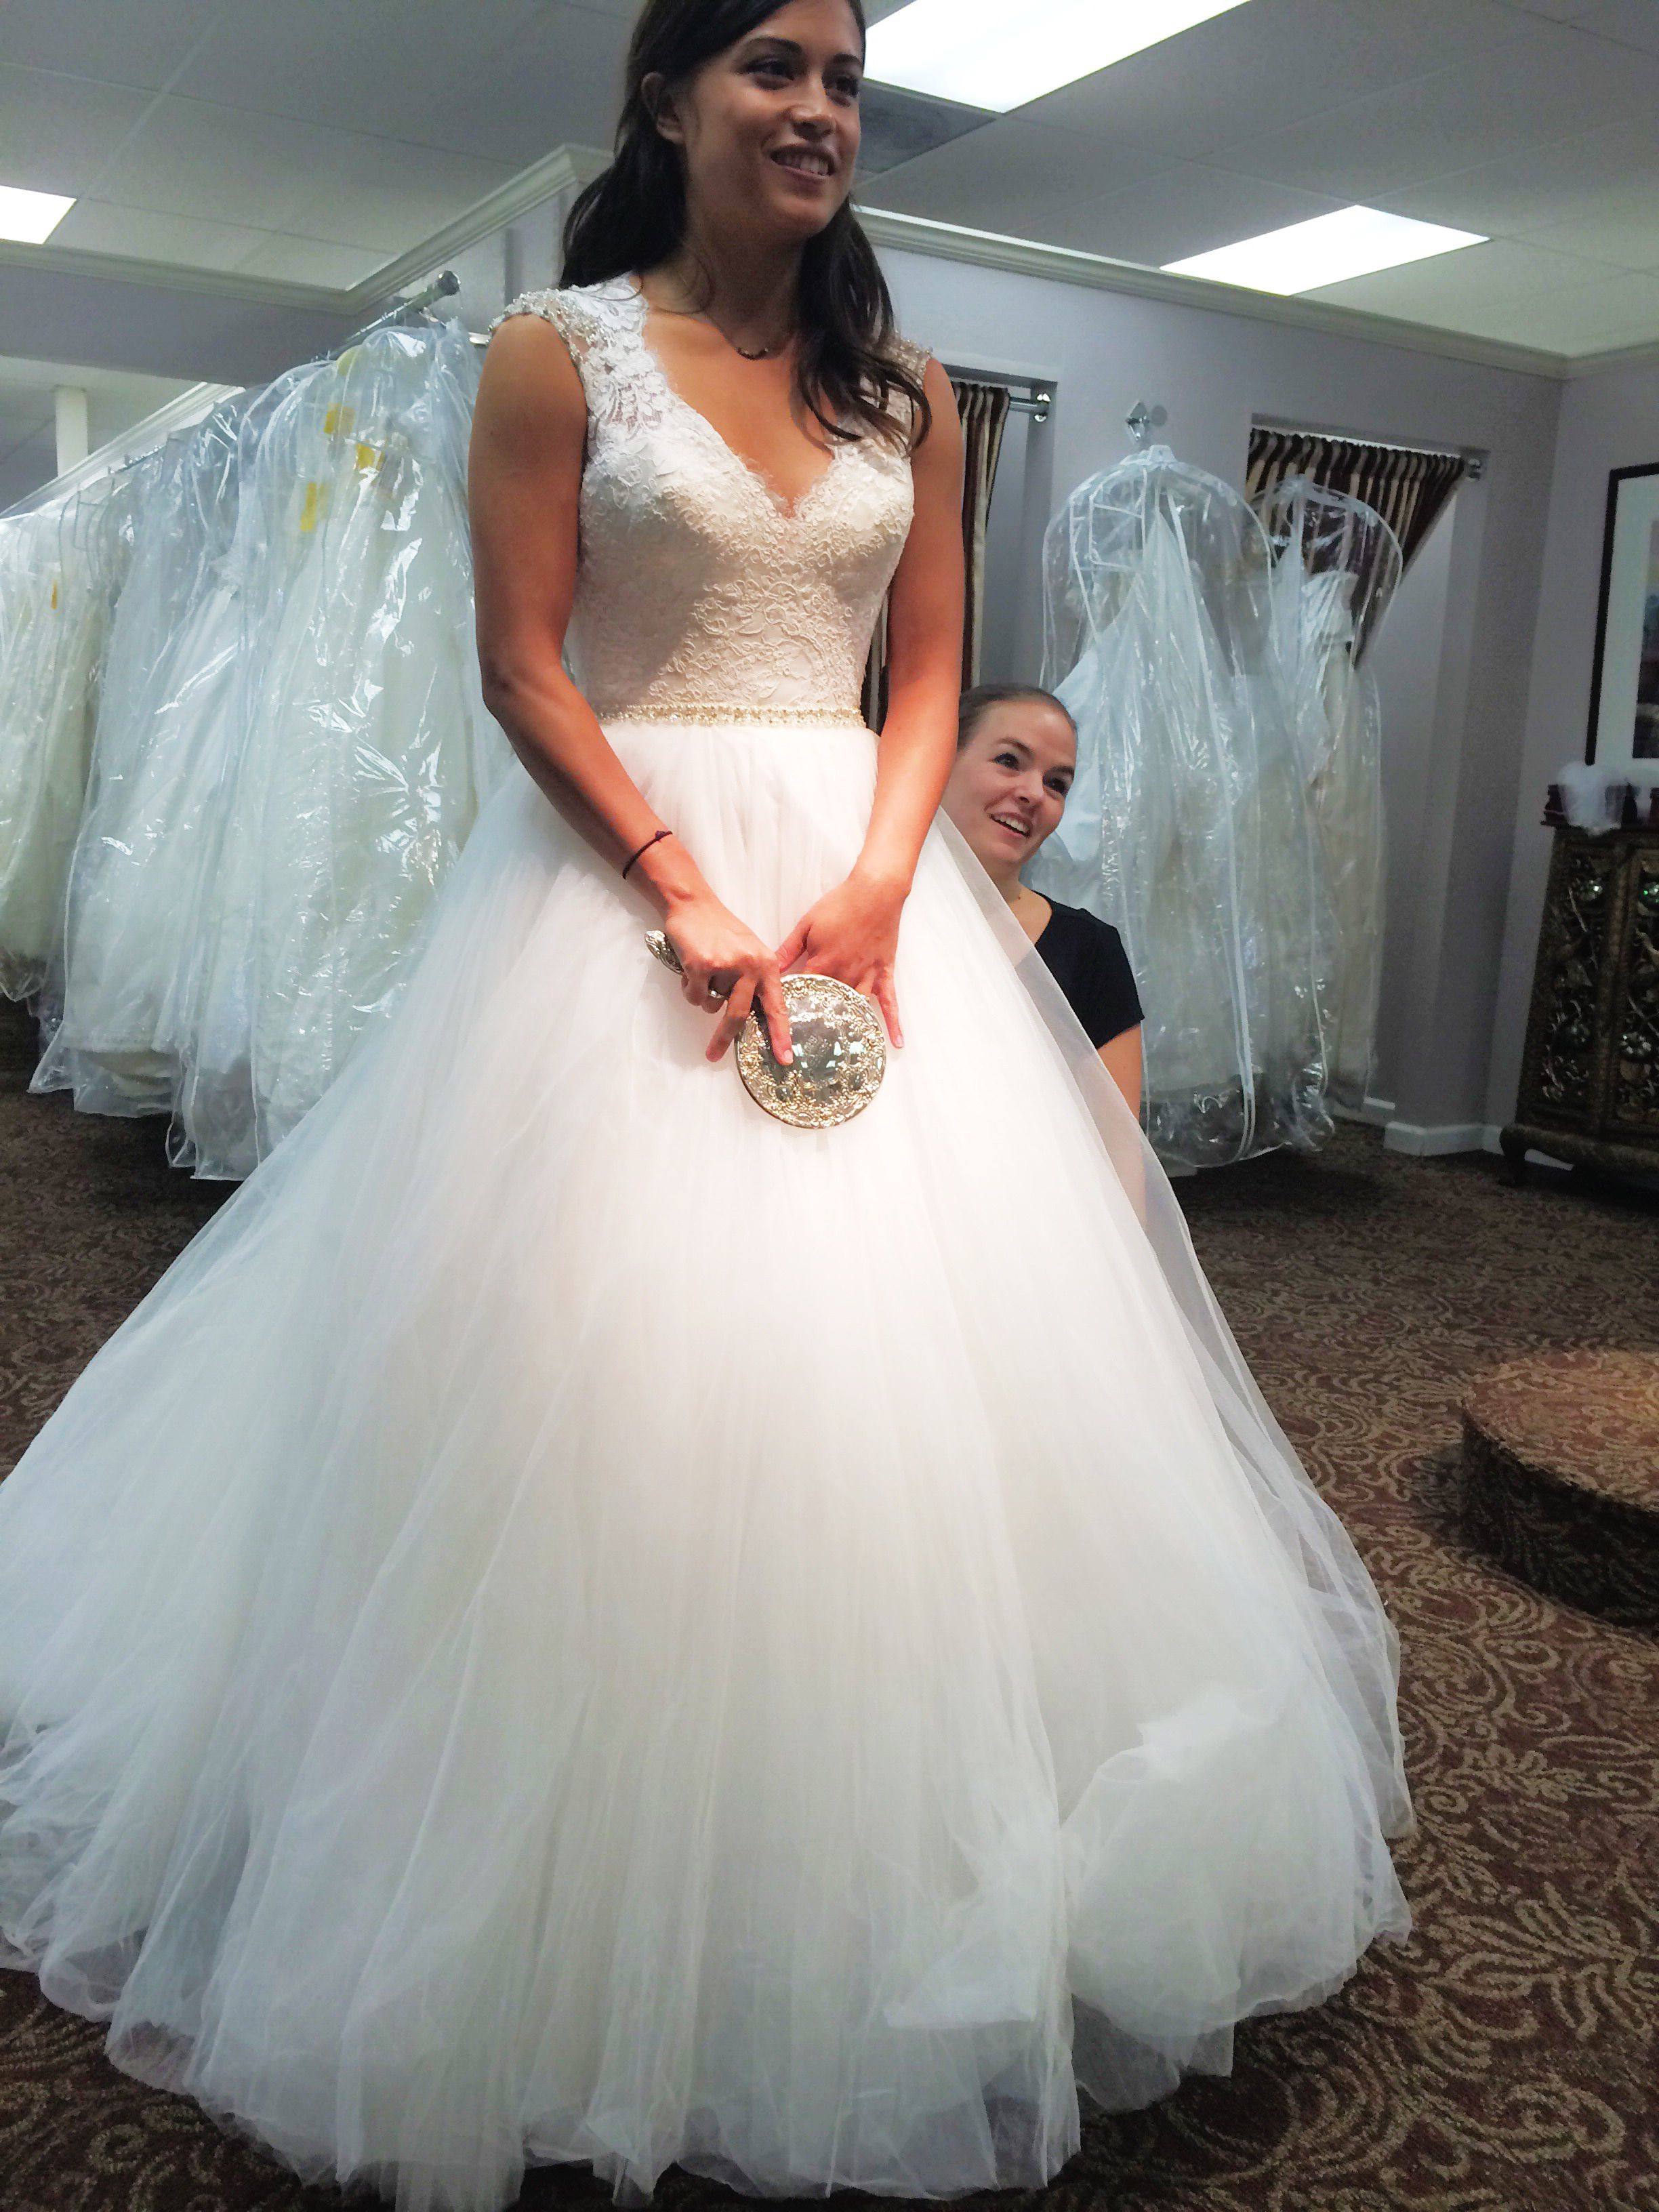 Allure brides! Show me pics ) Also, anyone try on 9162